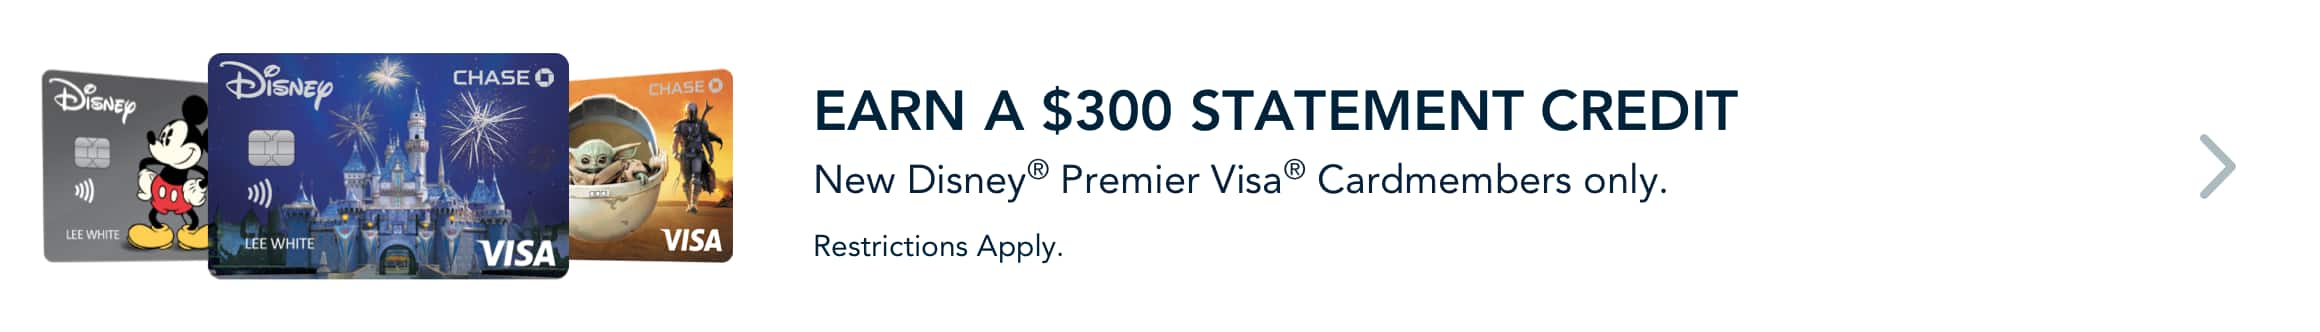 Earn $250 statement credit with a new Disney Premier Visa Card. Restrictions apply. Learn More